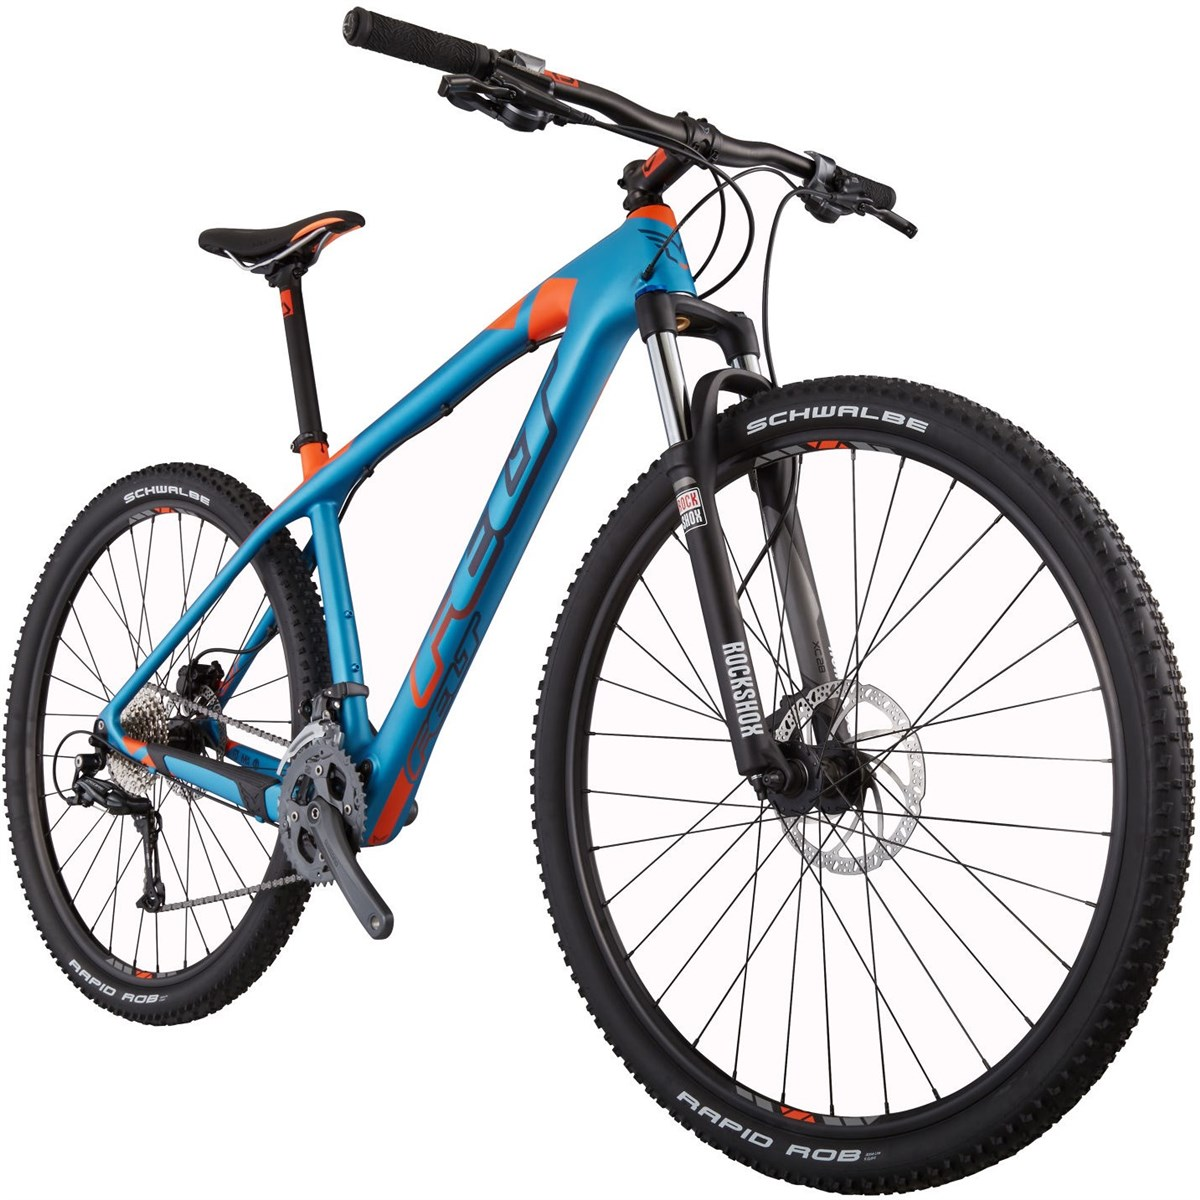 Felt Nine 6 Carbon 2016 Mountain Bike